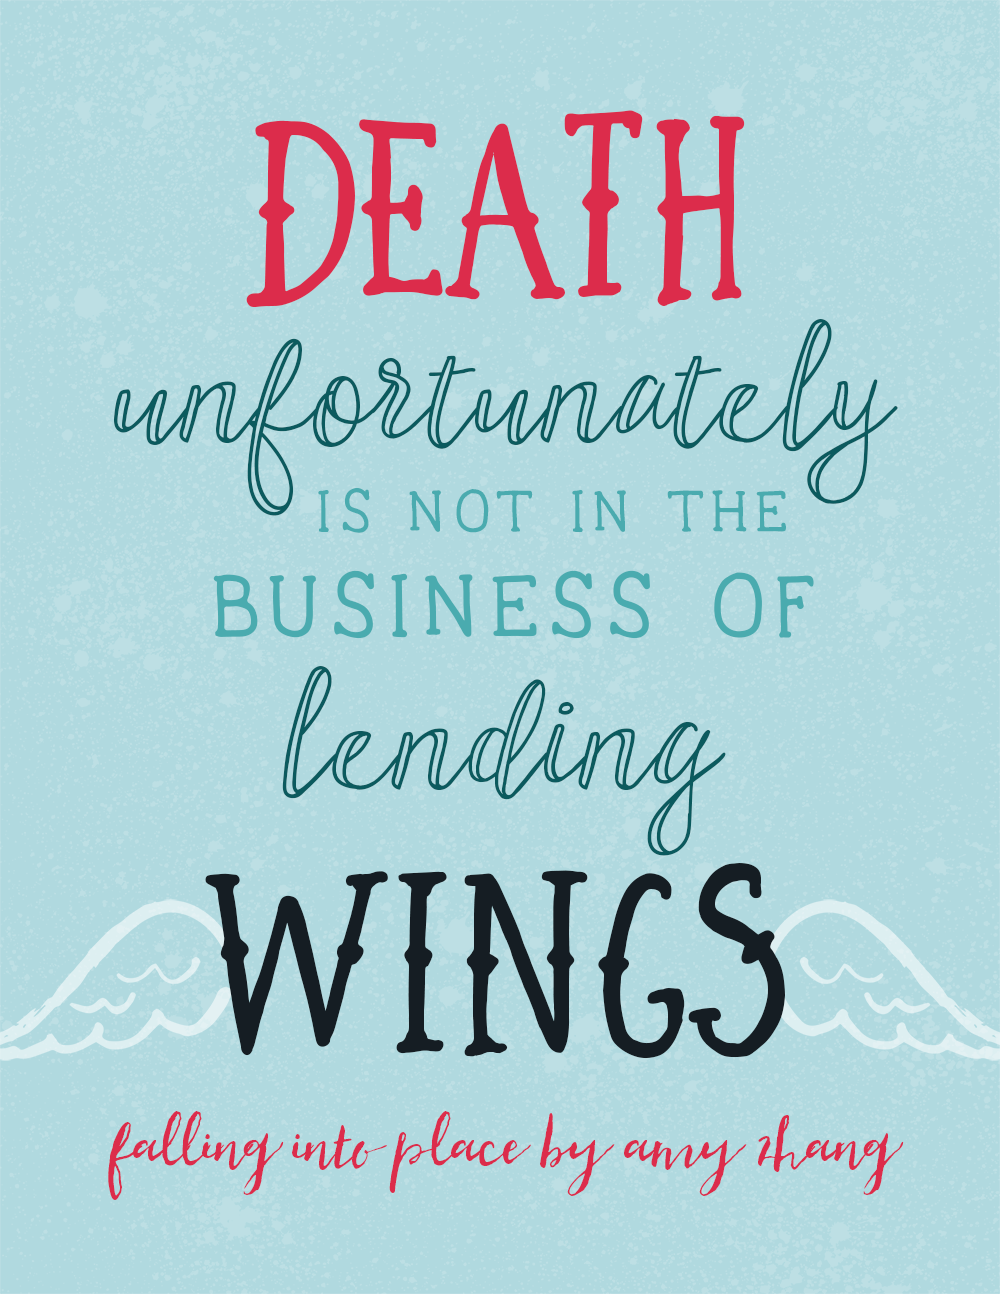 Falling Into Place quote - Death unfortunately is not in the business of lending wings